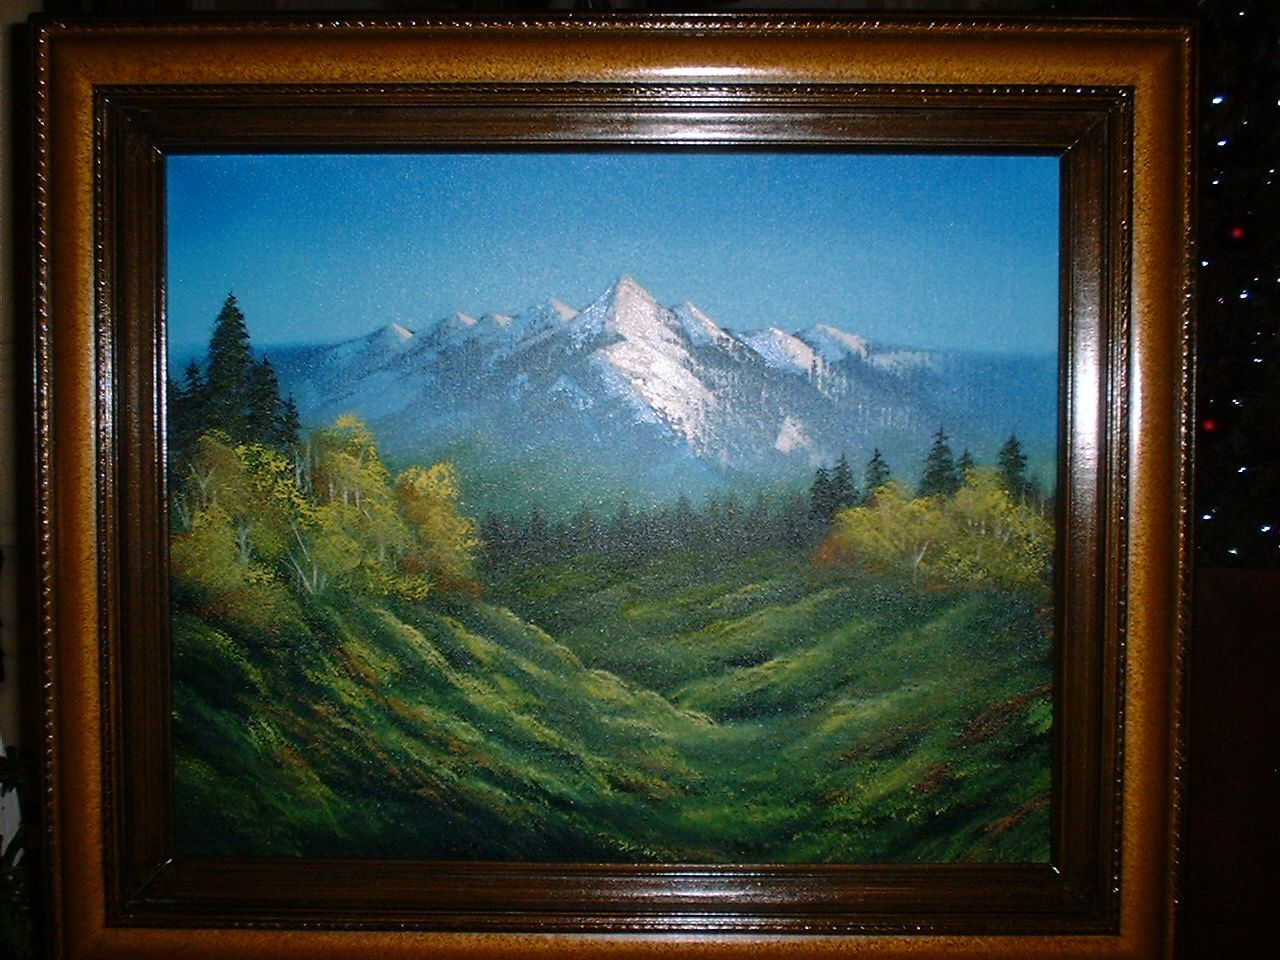 16X20 Oil canvas - Bob Ross technique. For sale with or without ...